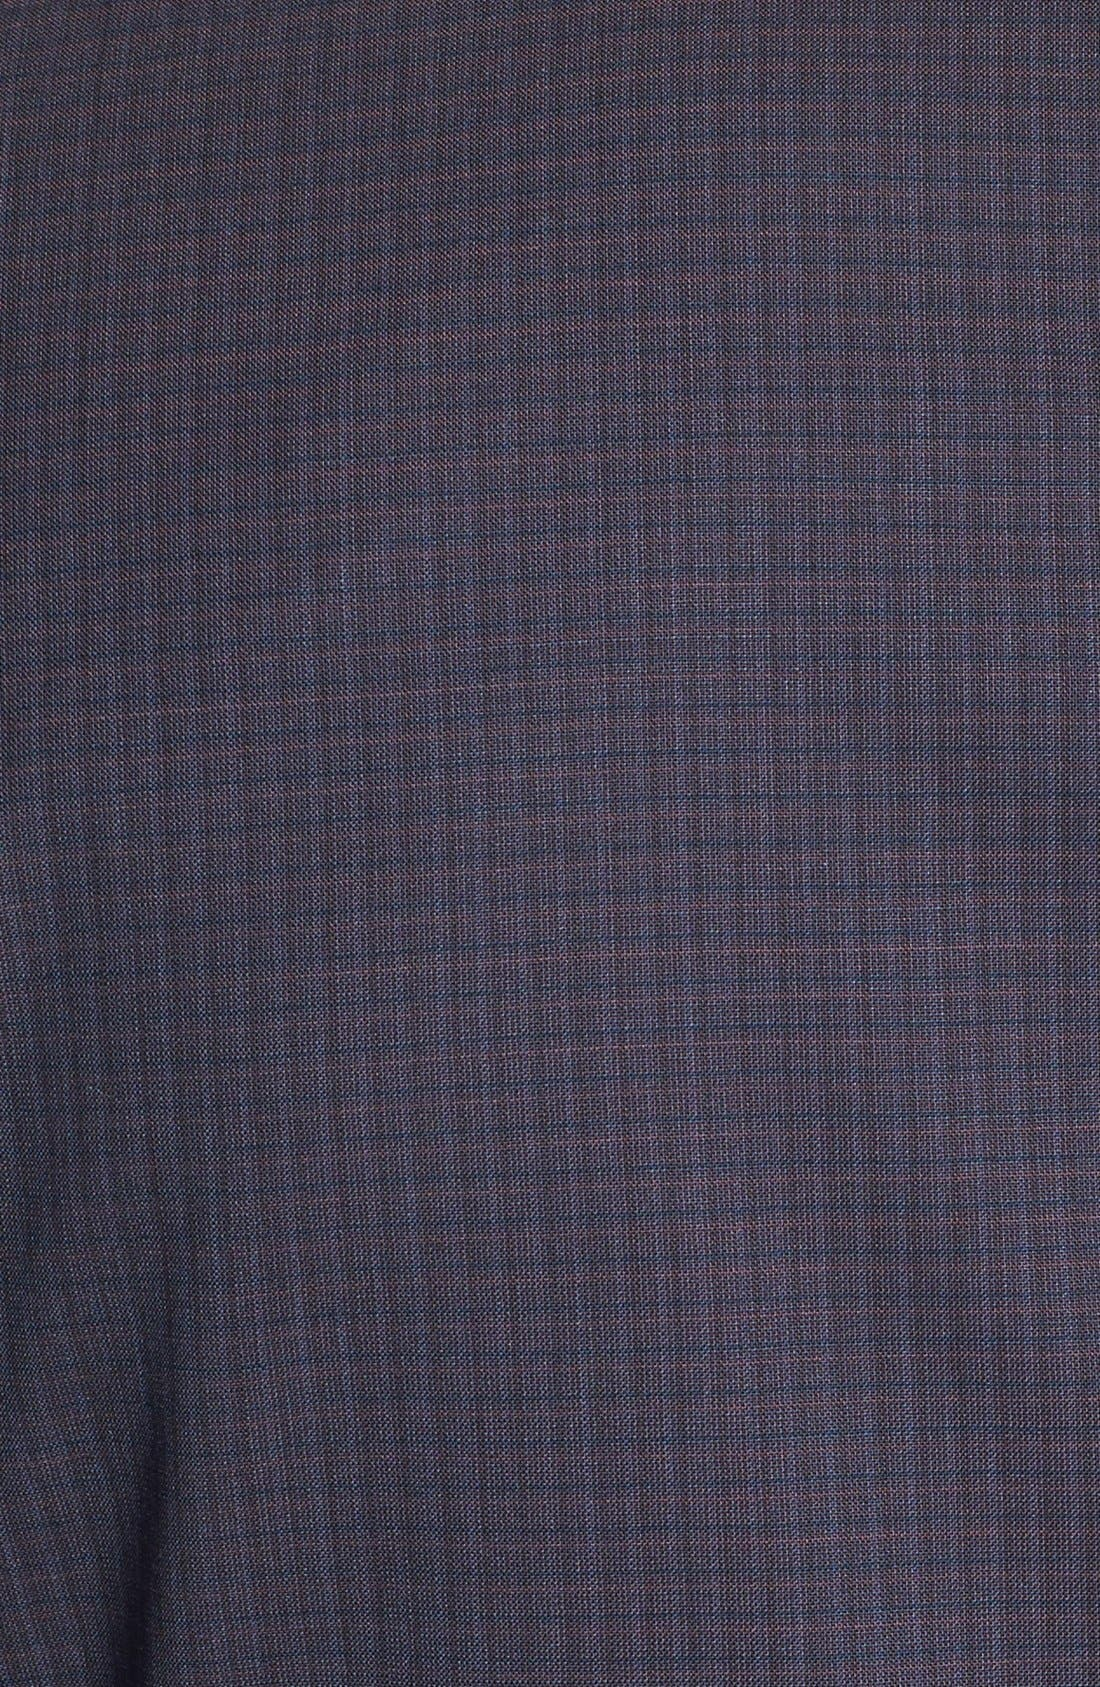 Alternate Image 3  - BOSS HUGO BOSS 'James' Trim Fit Check Sport Coat